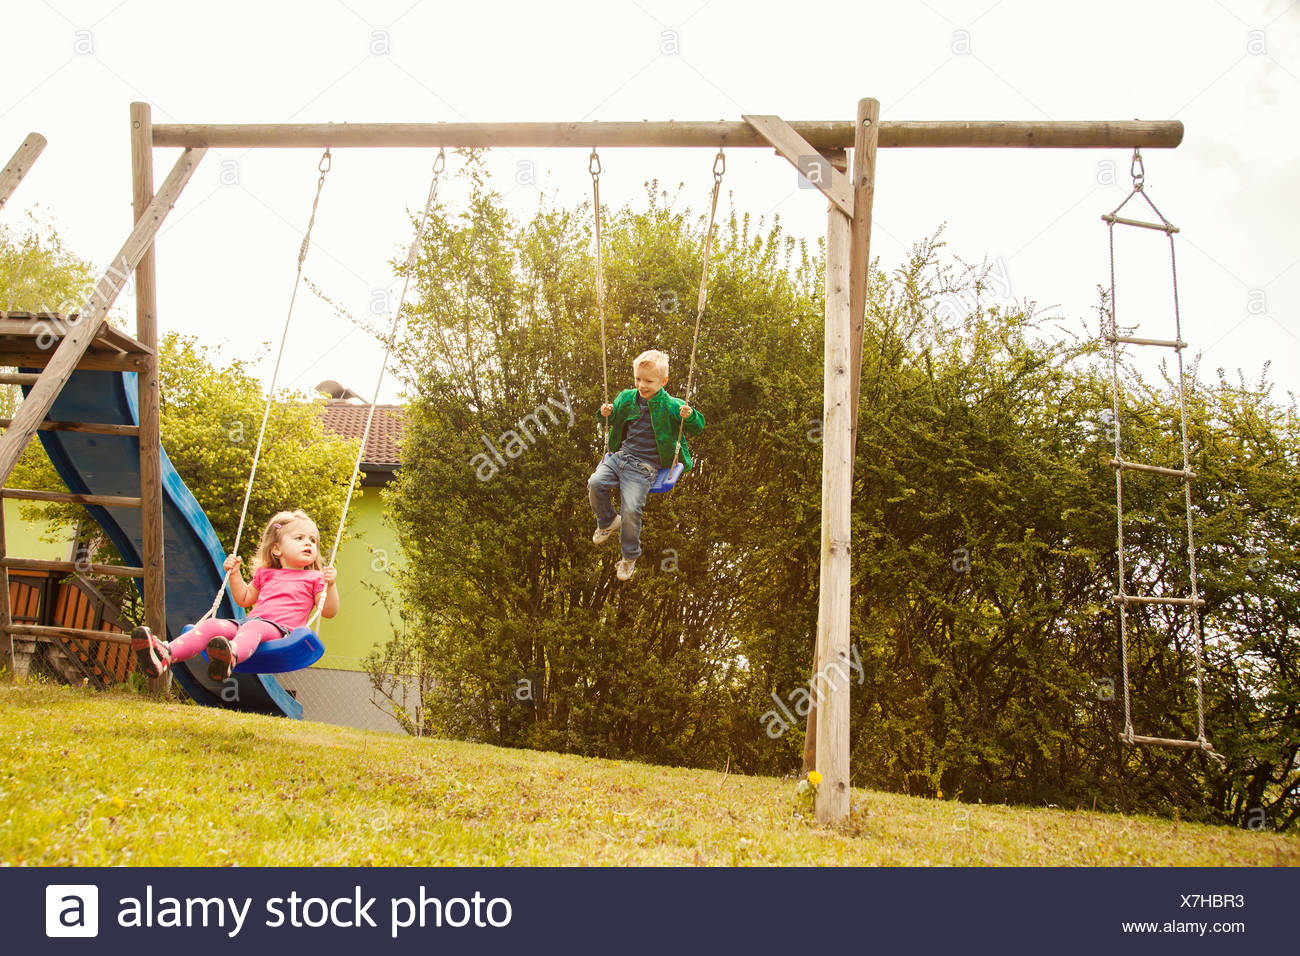 Sister Brother Sitting In Swing Stock Photos & Sister Brother ...